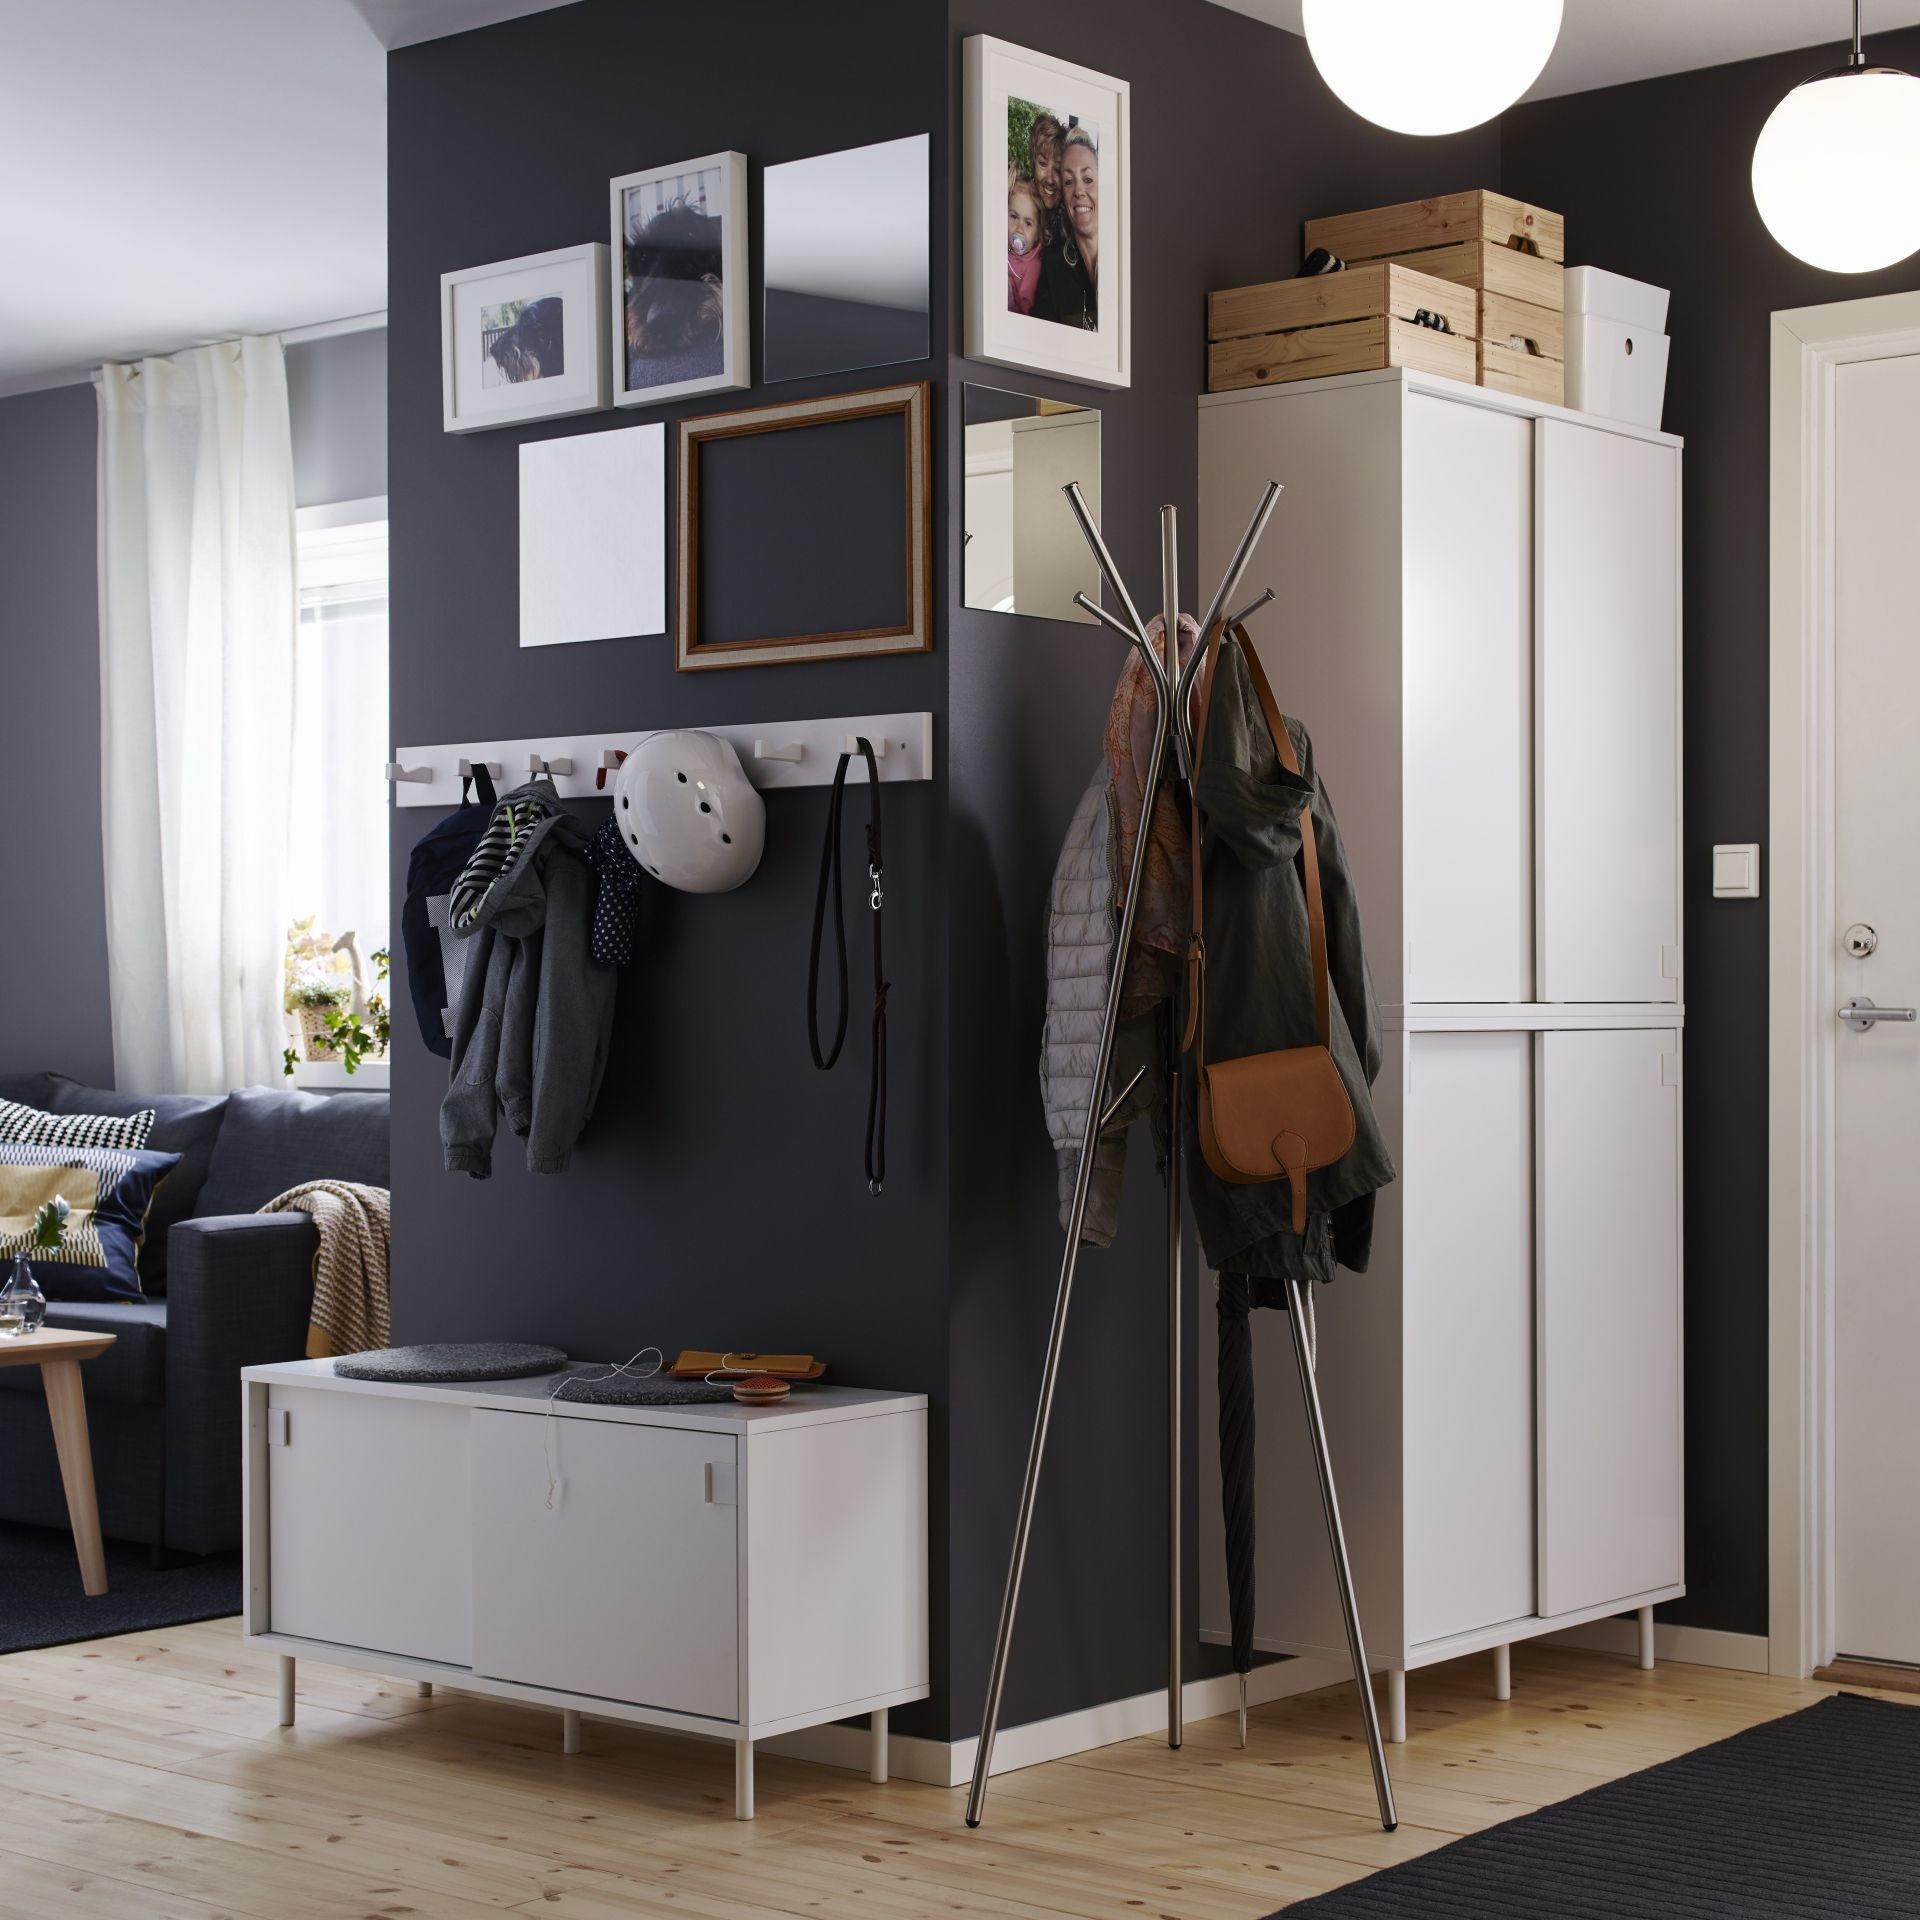 mackap r bank met opbergvakken interiors ikea hack and playrooms. Black Bedroom Furniture Sets. Home Design Ideas